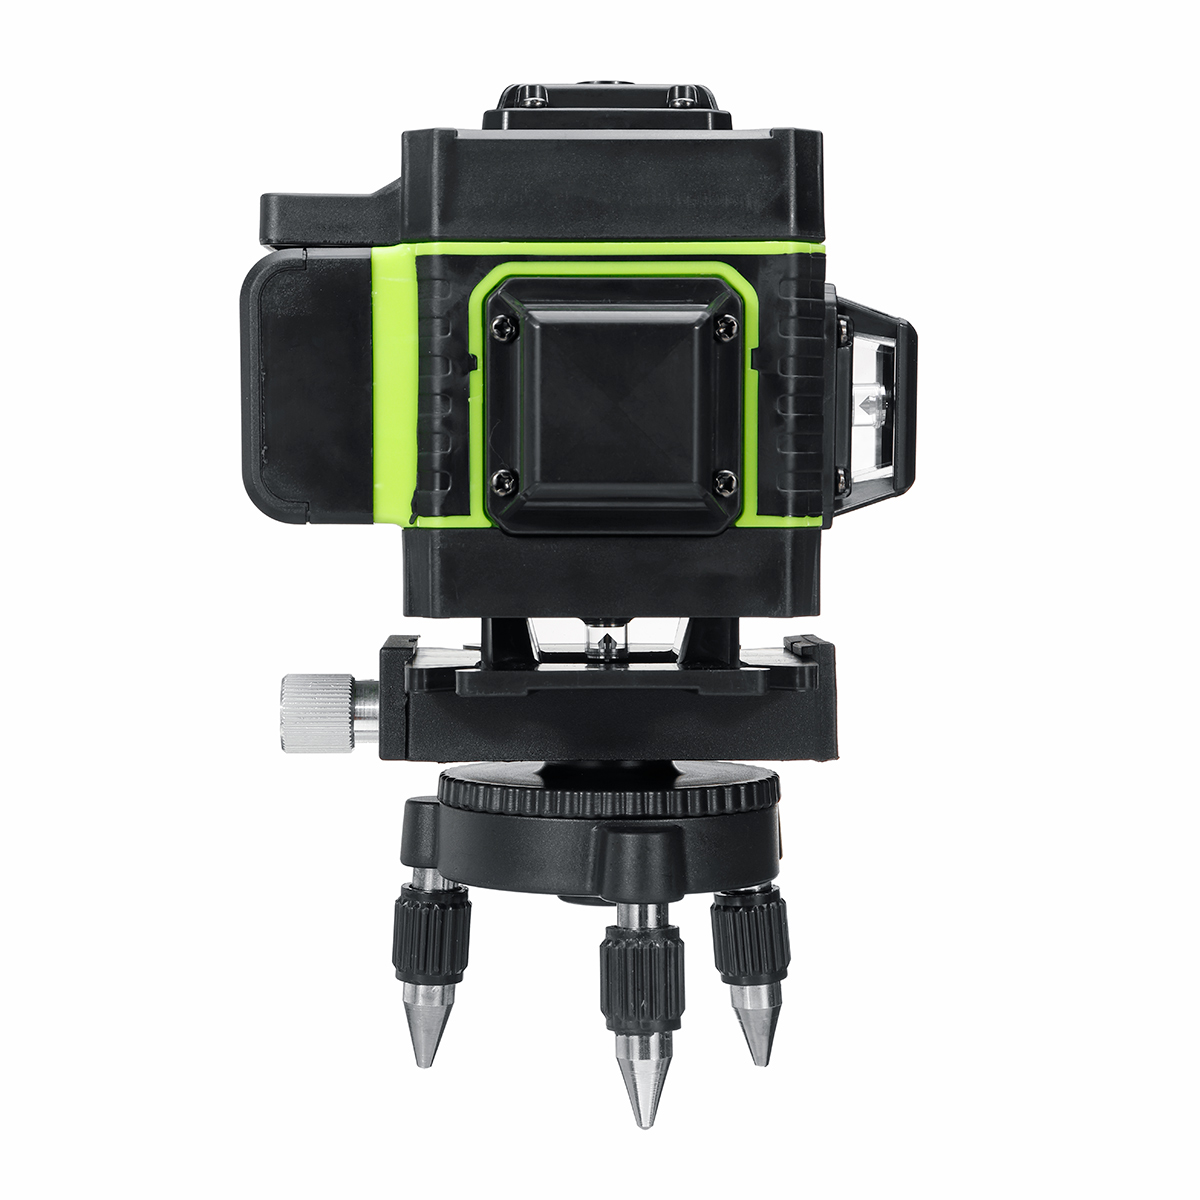 16 Blue Lines Laser Level Measuring Devicesline 360 Degree Rotary Horizontal and Vertical Cross Laser Level with Base